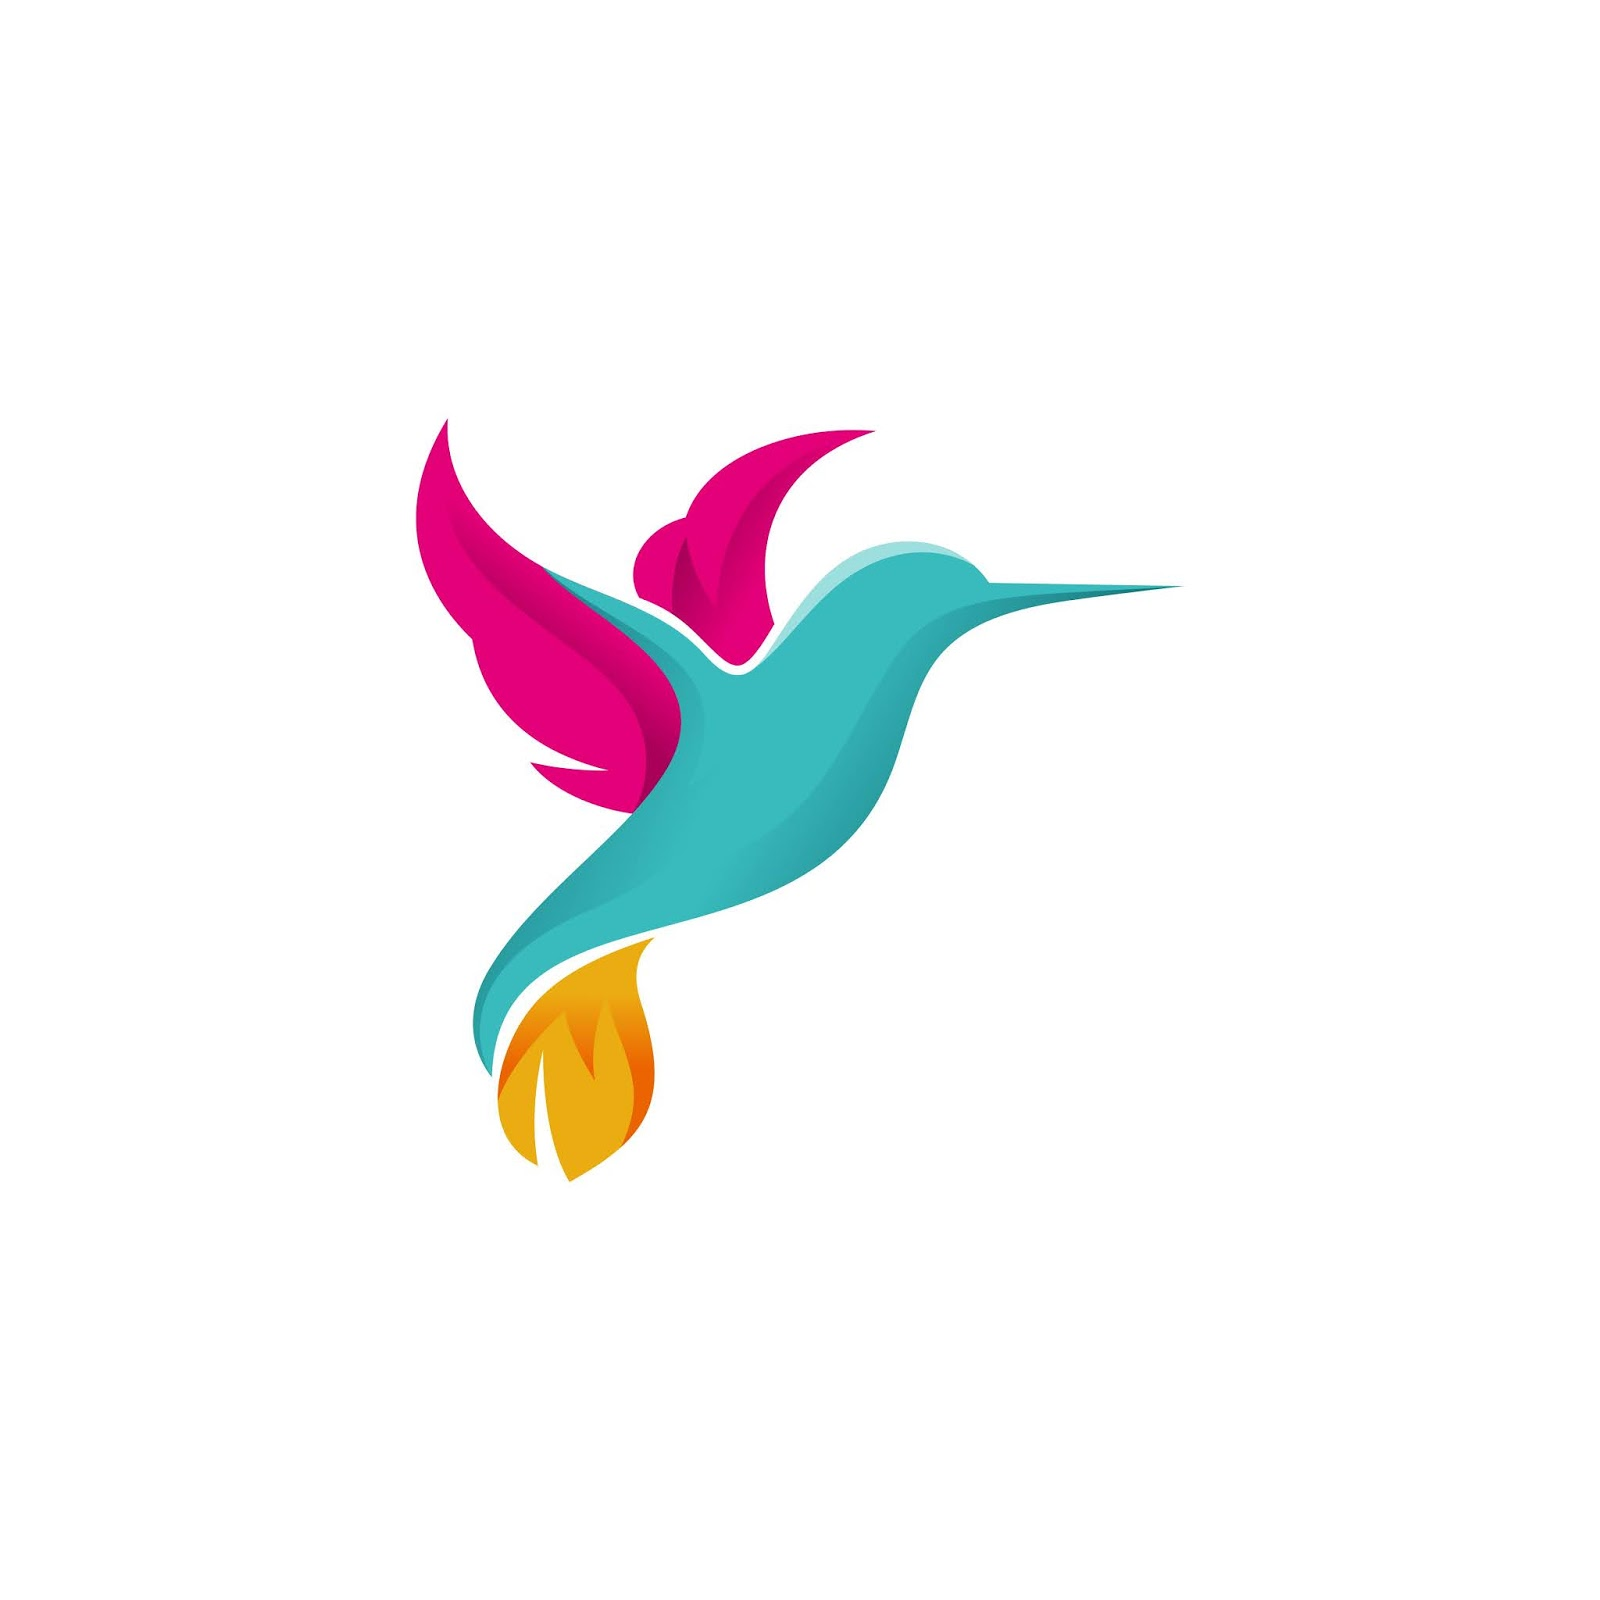 Hummingbird Logo Free Download Vector CDR, AI, EPS and PNG Formats